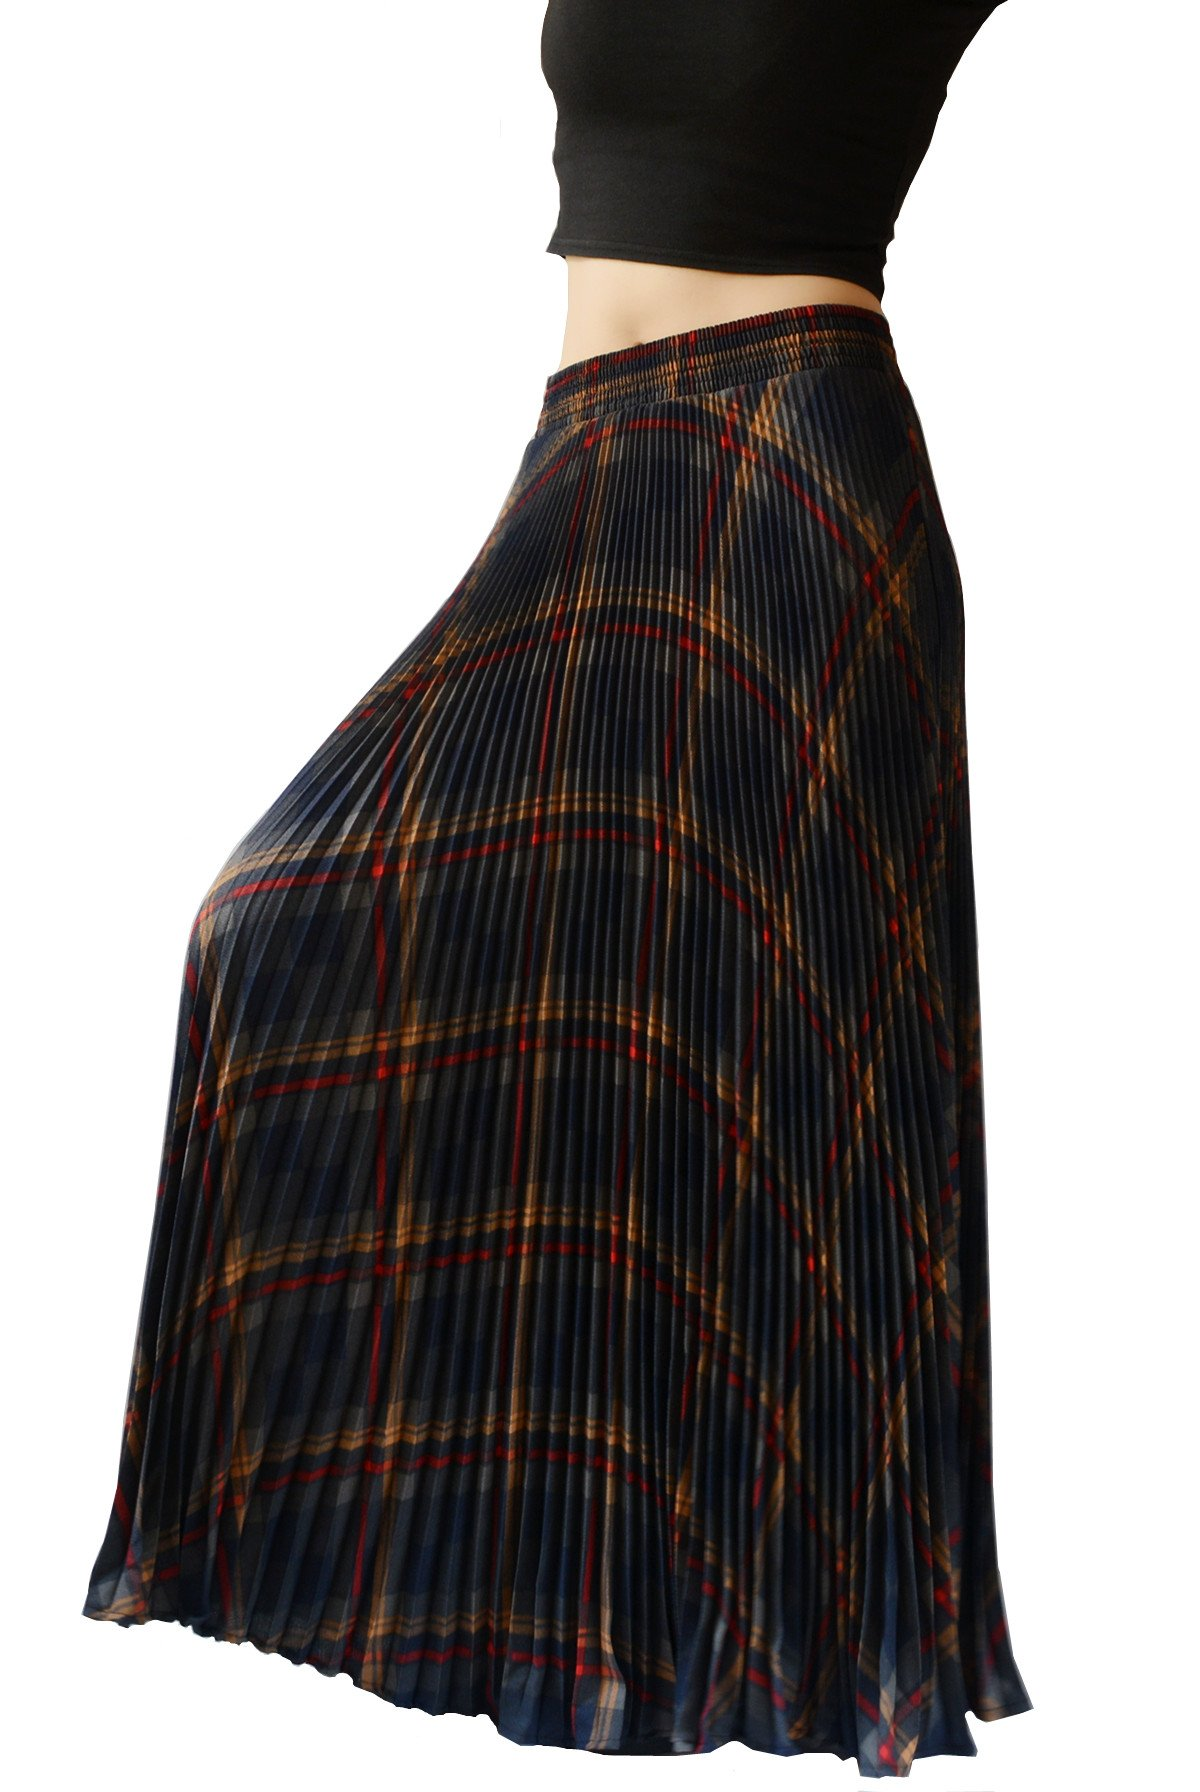 YSJ Womens Plaid Long Maxi Skirt - 37.8'' Thick 360 Sunray Pleated Full Skirt Dress (Brown) One Size